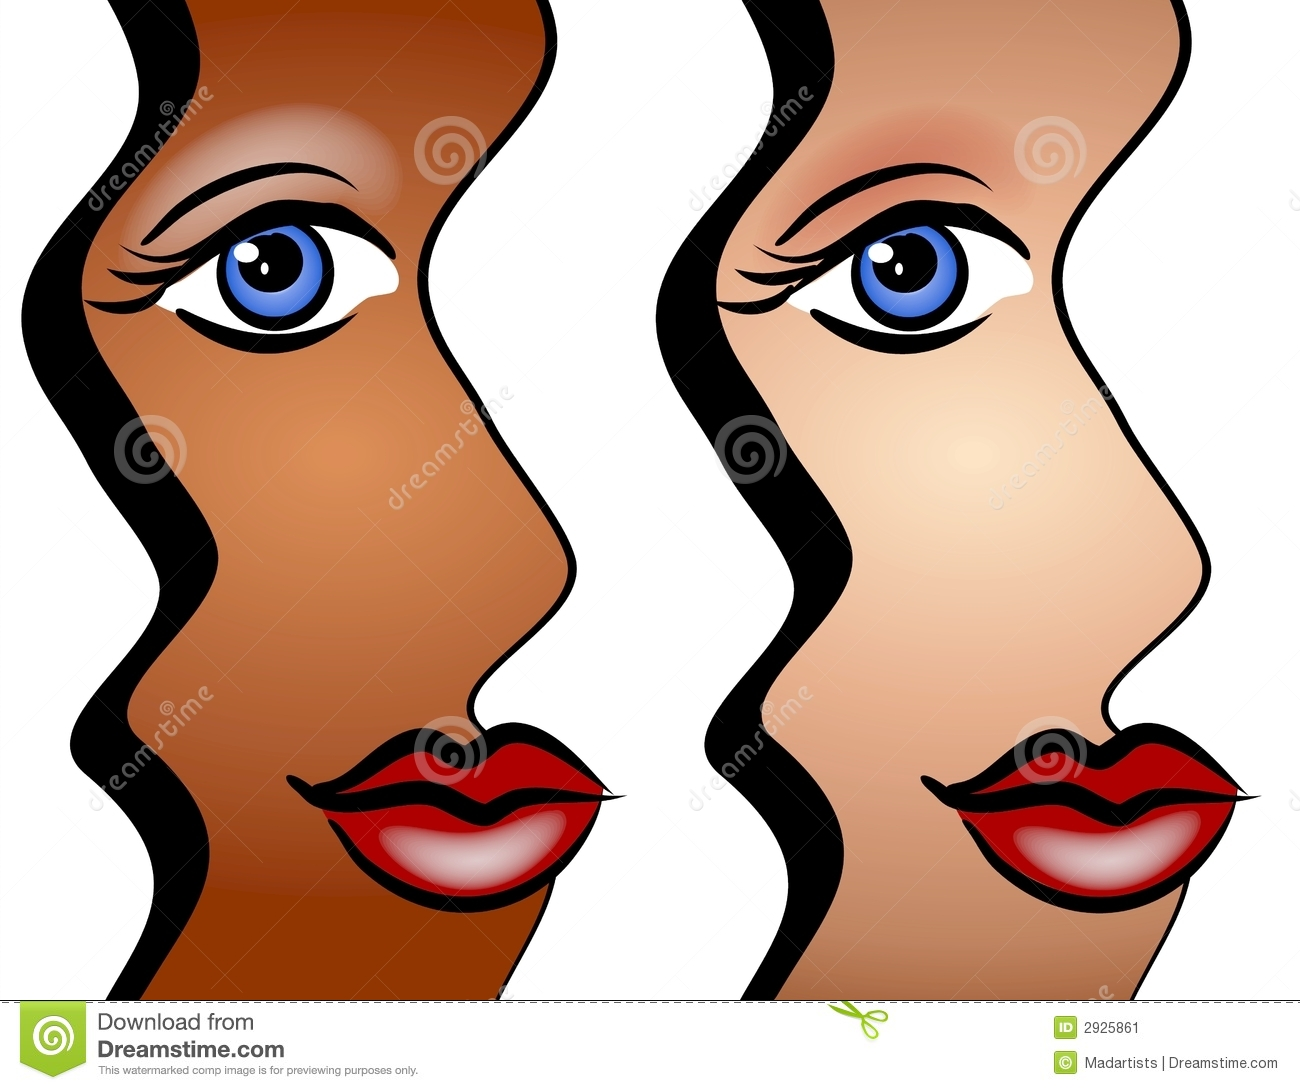 Abstract Faces Of Women Art Stock Image - Image: 2925861